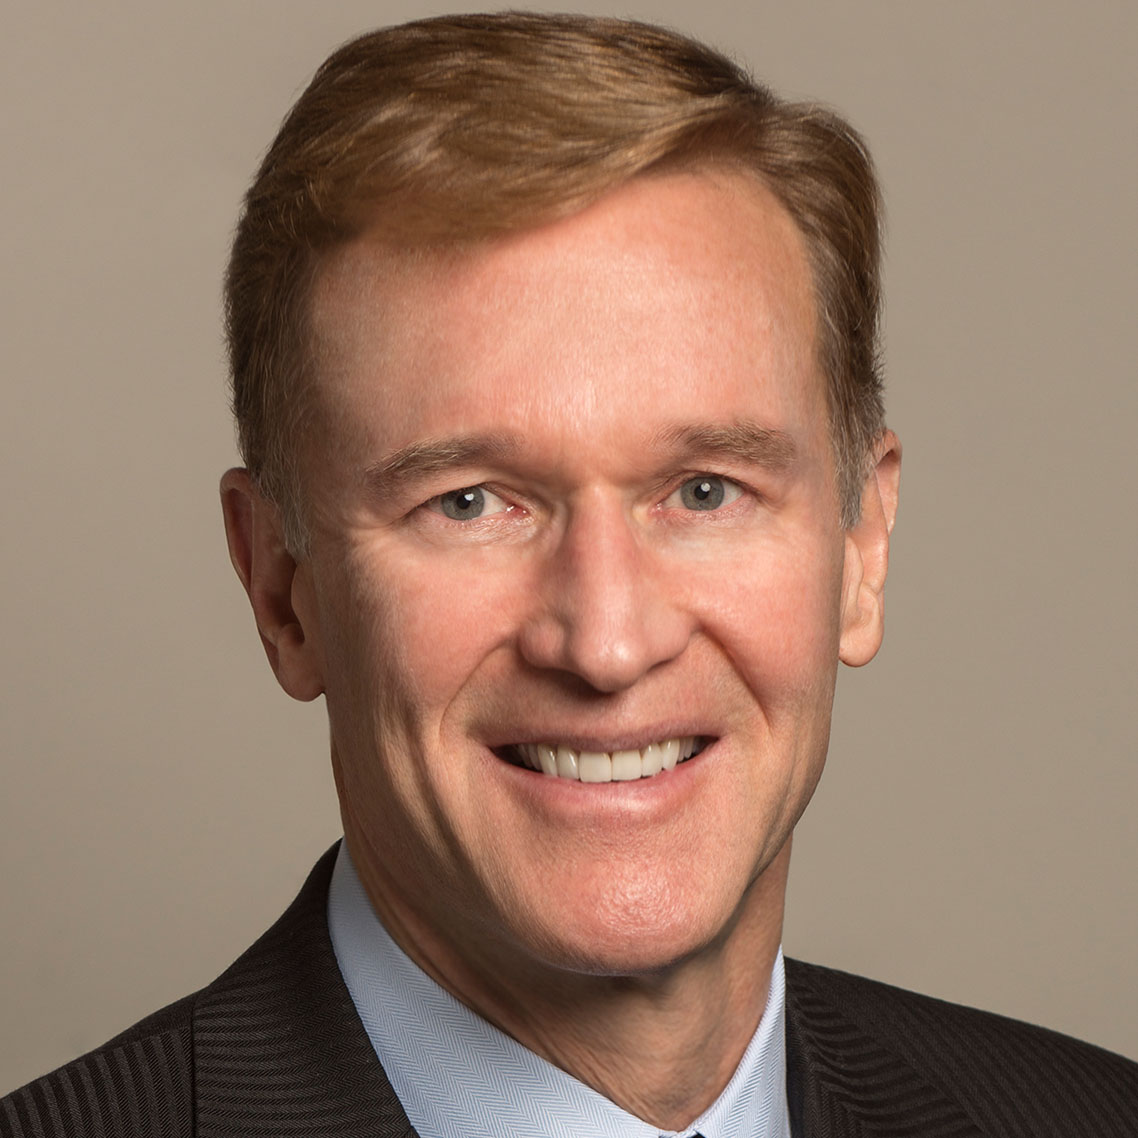 Wendell P. Weeks, Chairman and Chief Executive Officer